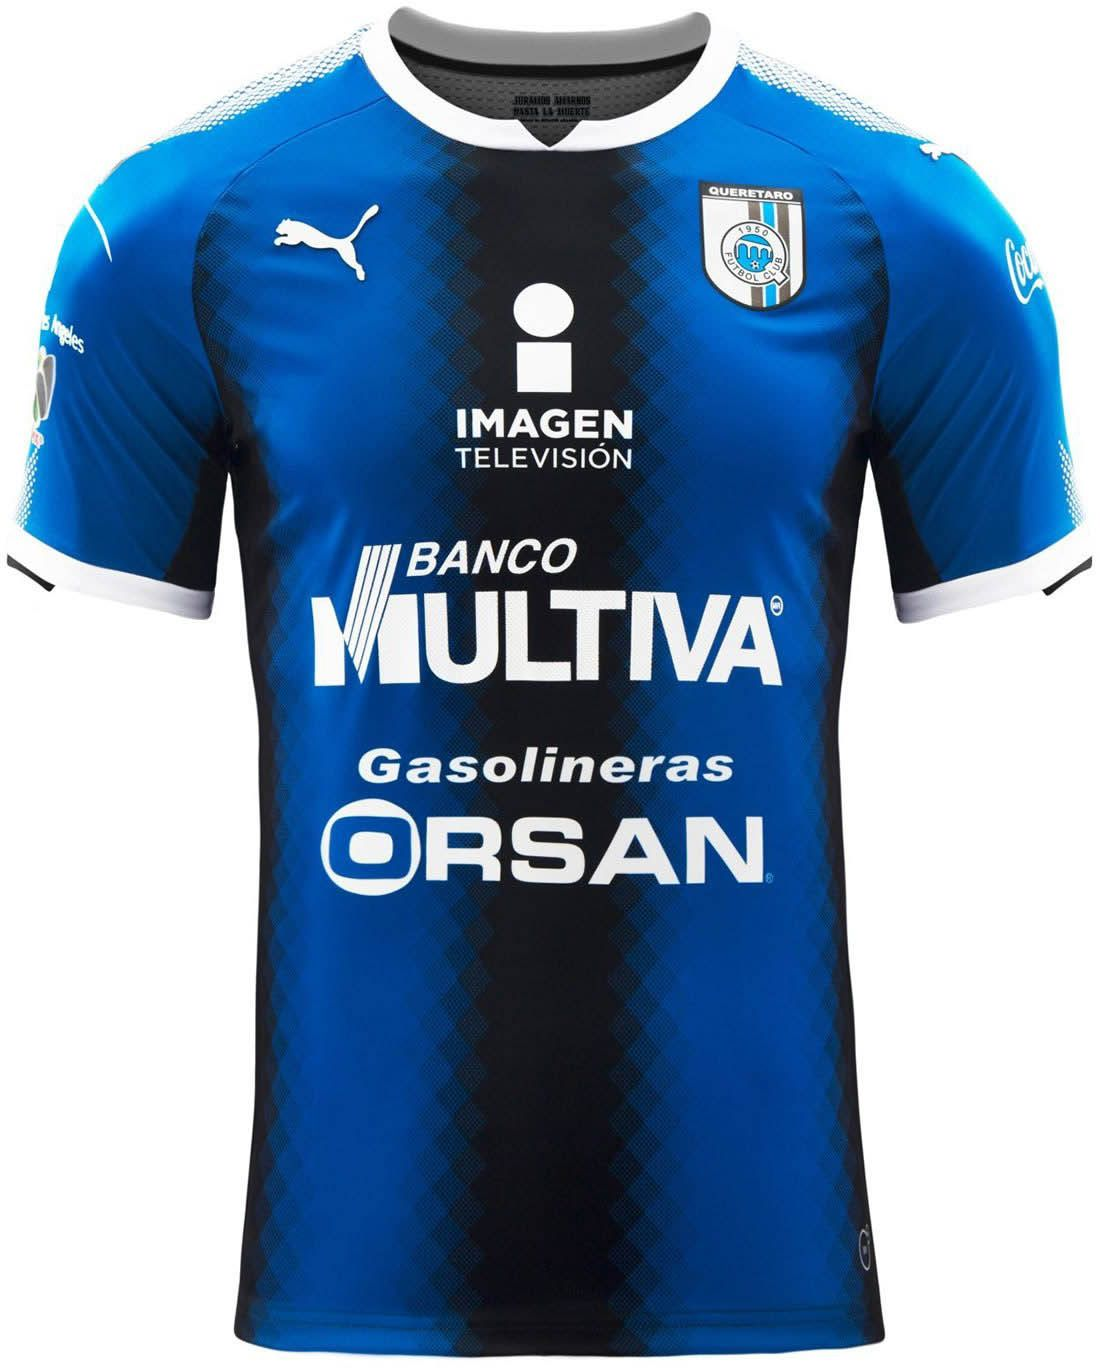 The new Puma Club Querétaro 17-18 home jersey introduces ...